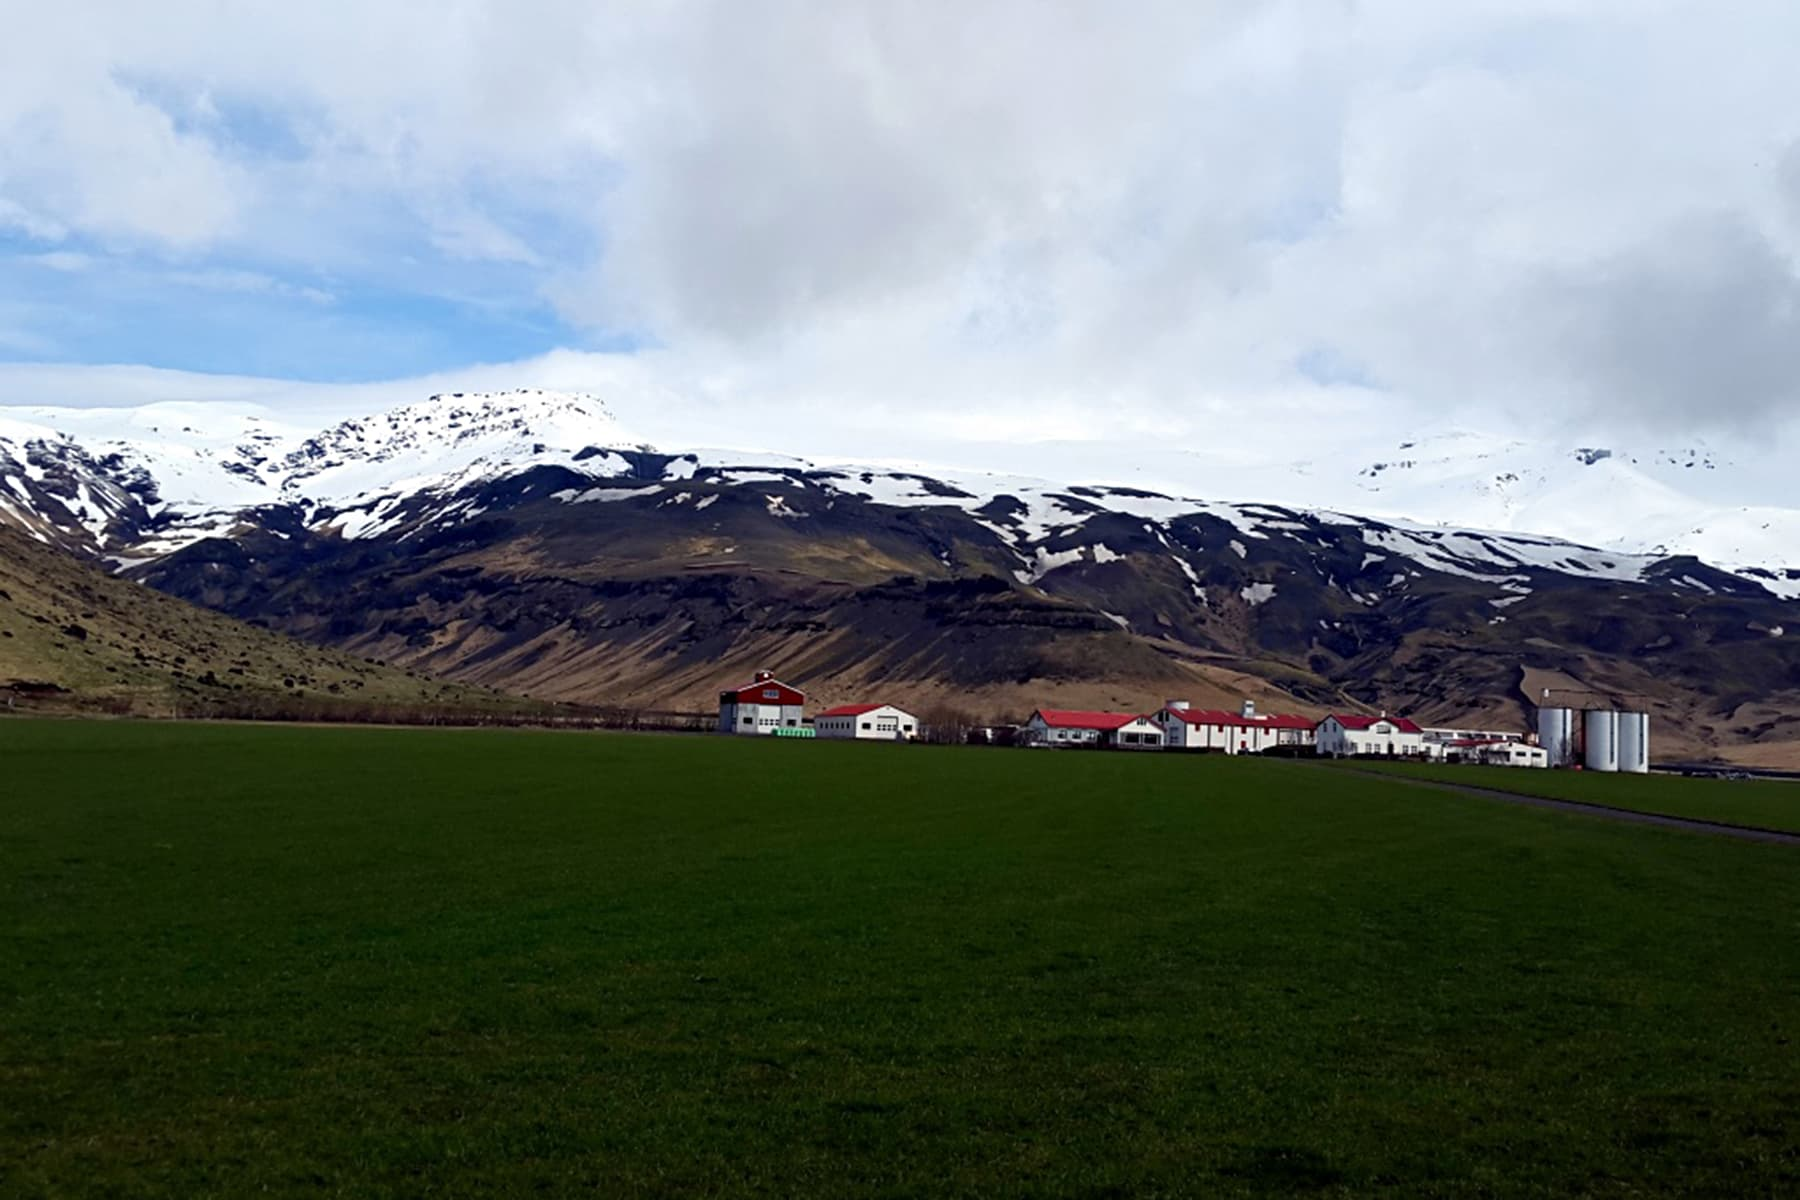 A view of Eyjafjallajokull, a volcano that erupted in 2010, causing thousands of flight disruptions around Europe.